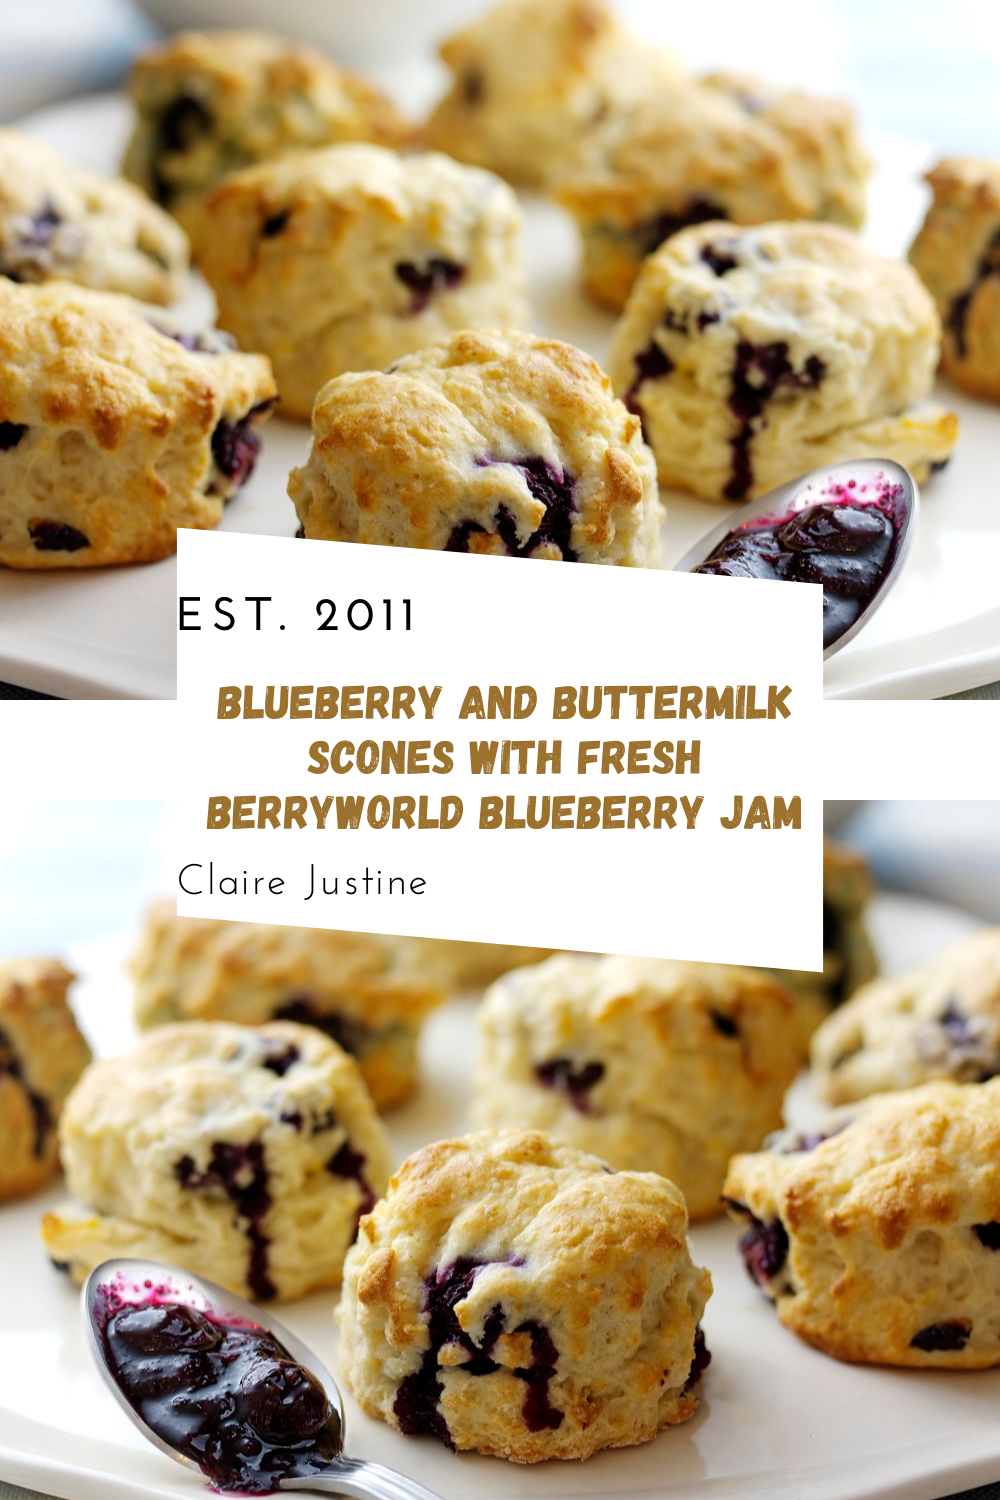 BerryWorld Blueberry And Buttermilk Scones With Fresh BerryWorld Blueberry Jam.